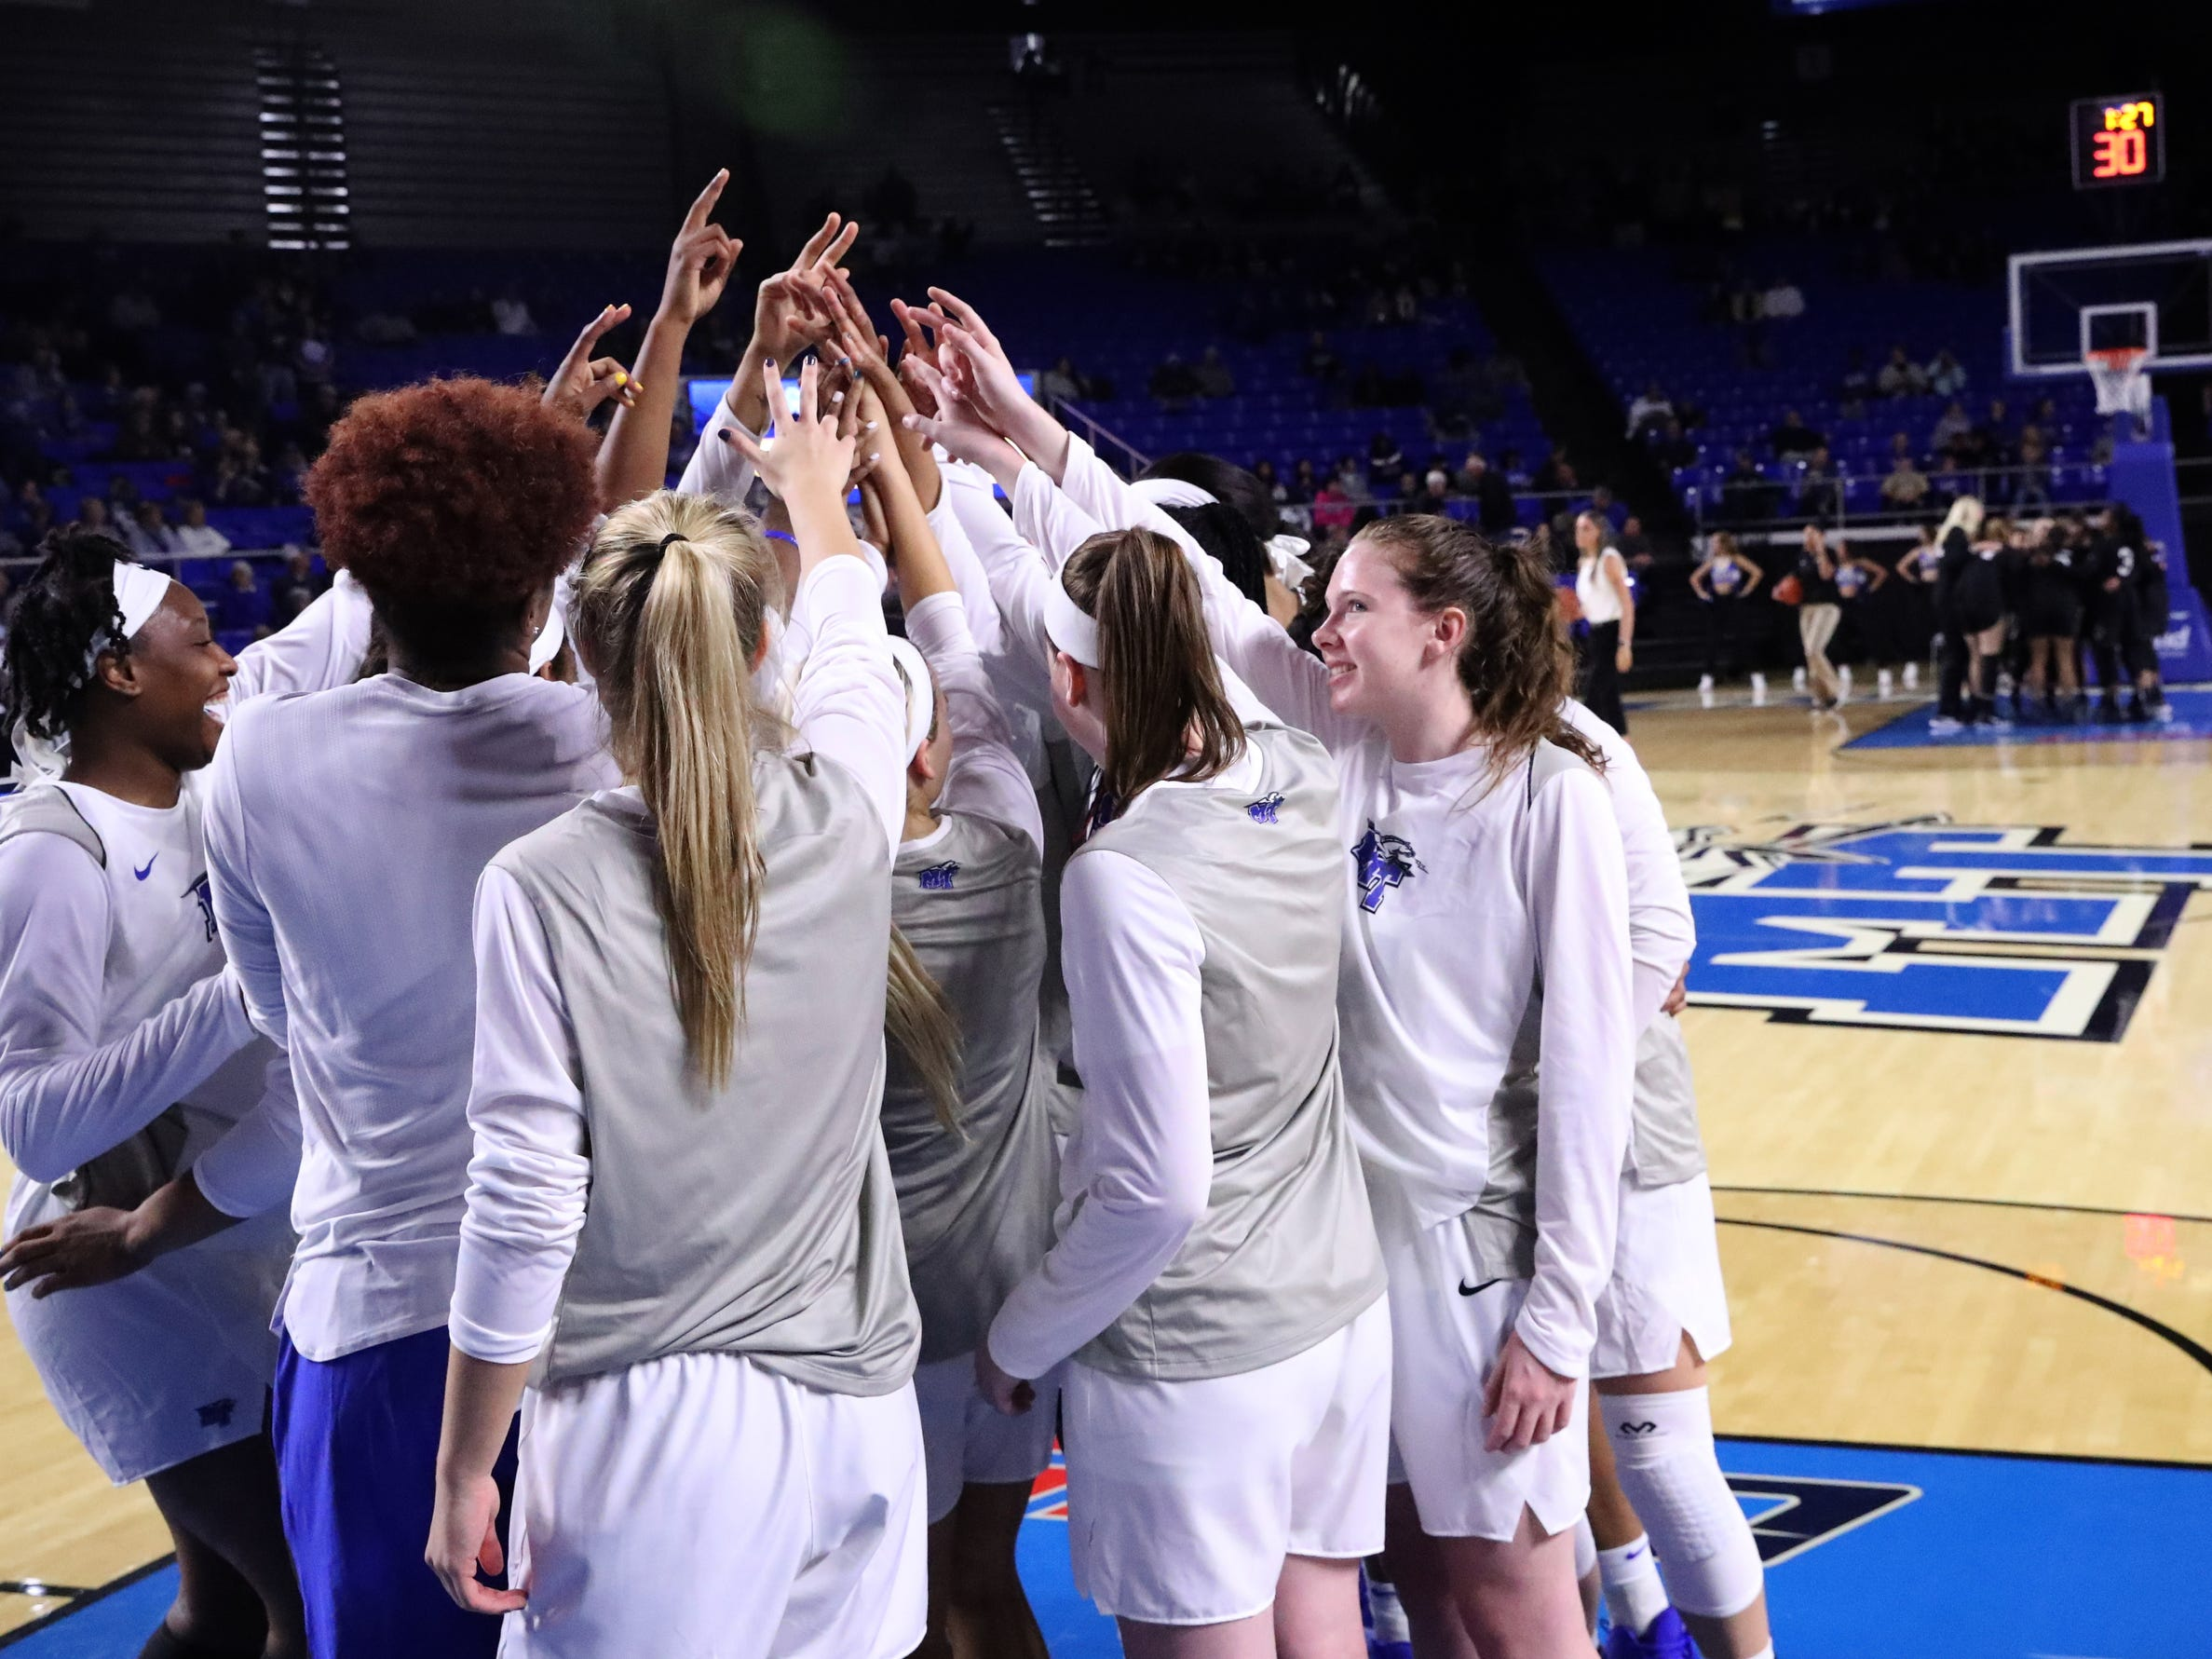 MTSU's players gather together on the floor before their home opener against Vanderbilt at MTSU on Friday, Nov. 8, 2018.